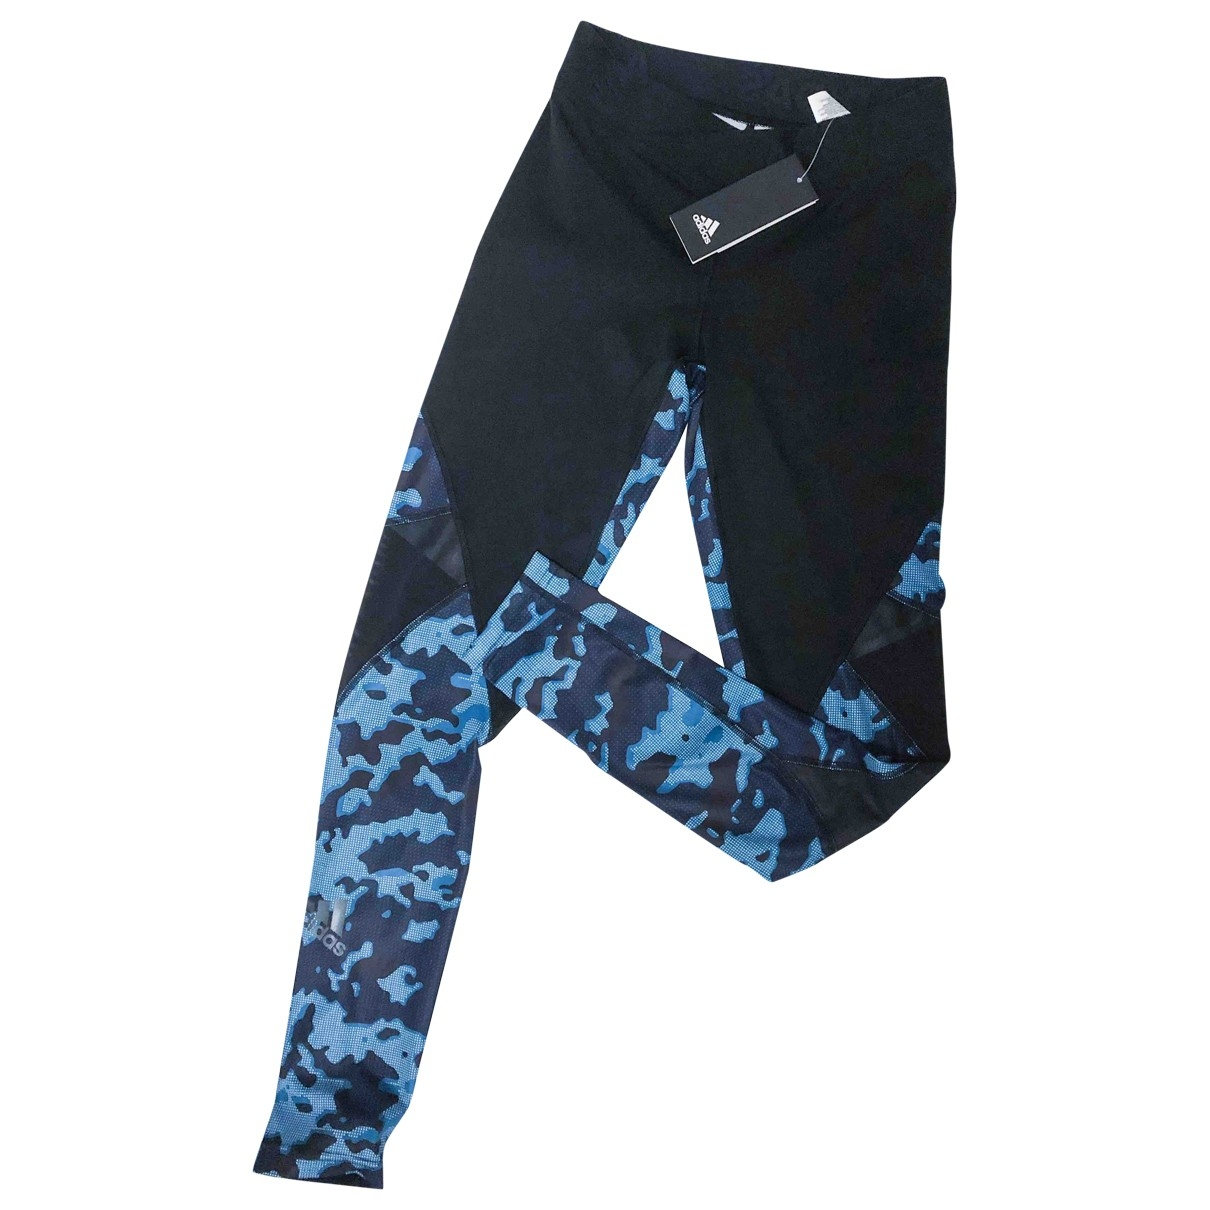 Adidas \N Navy Trousers for Women S International